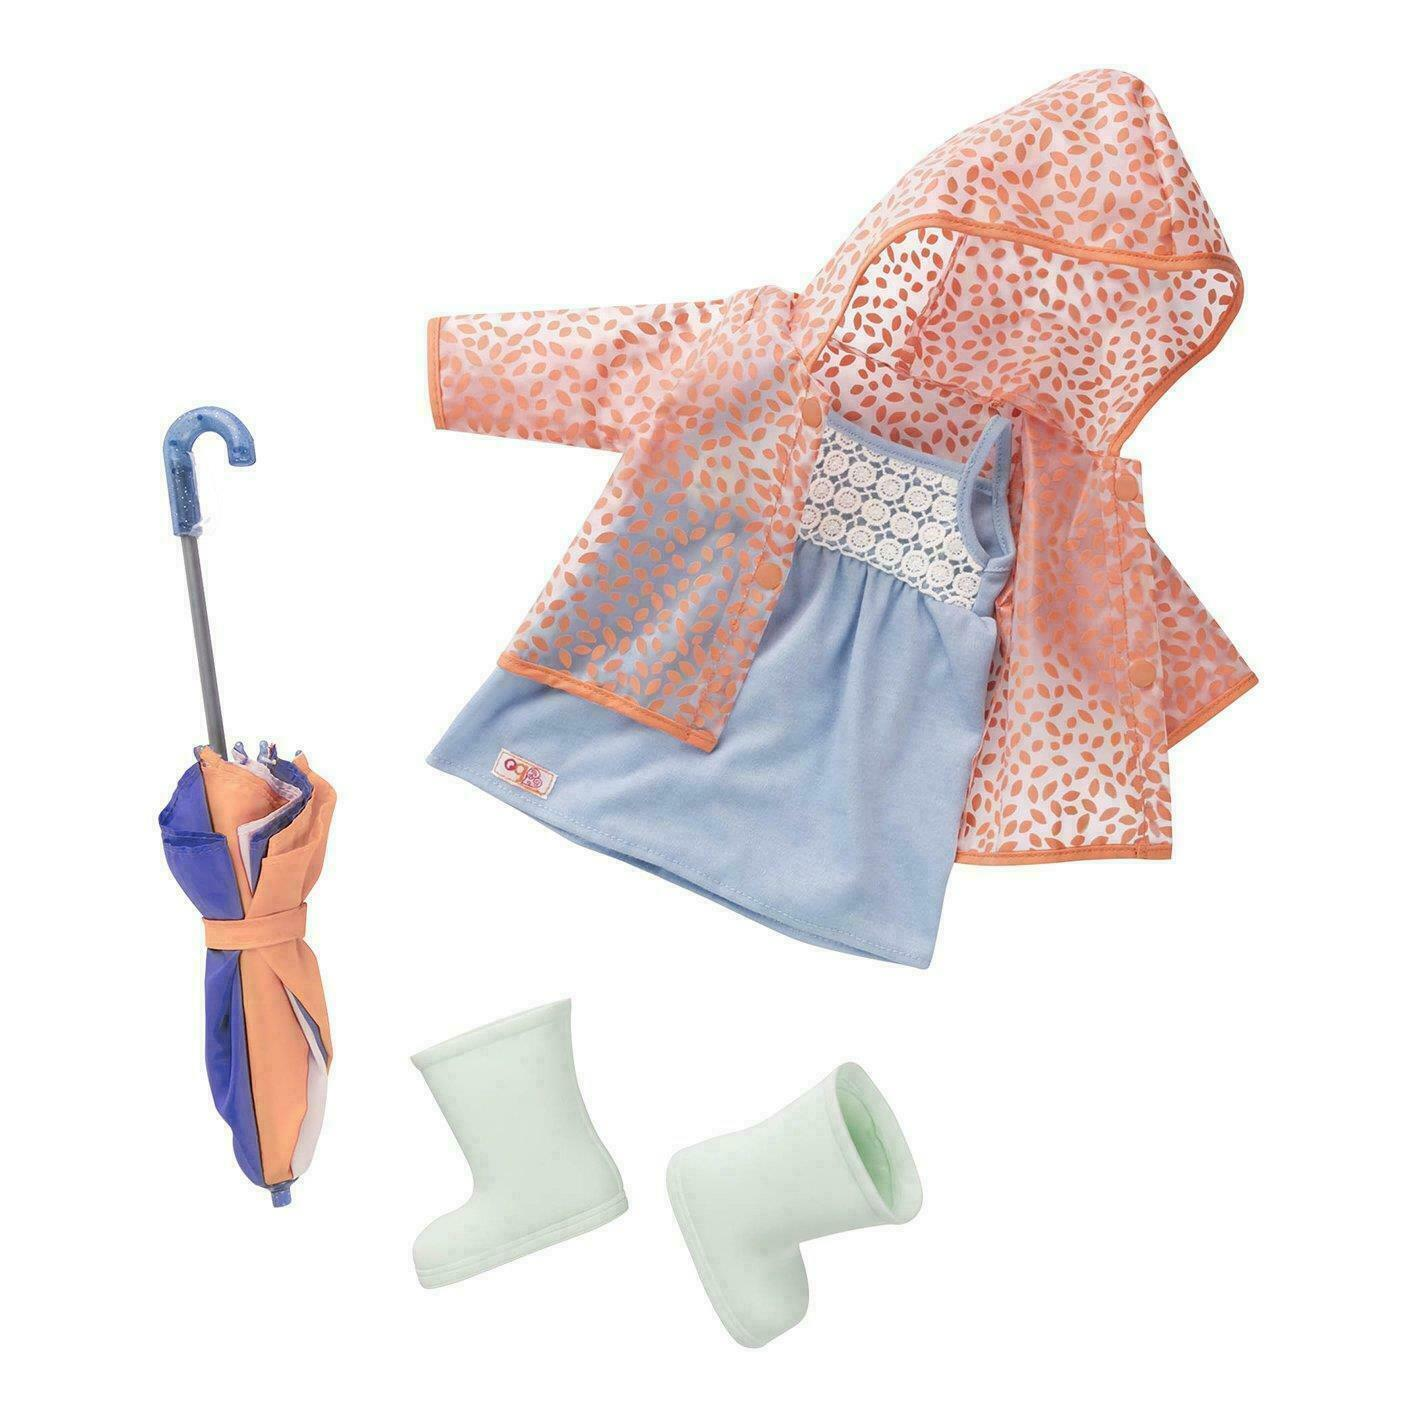 Our Generation Brighten Up A Rainy Day Deluxe Outfit - $35.80